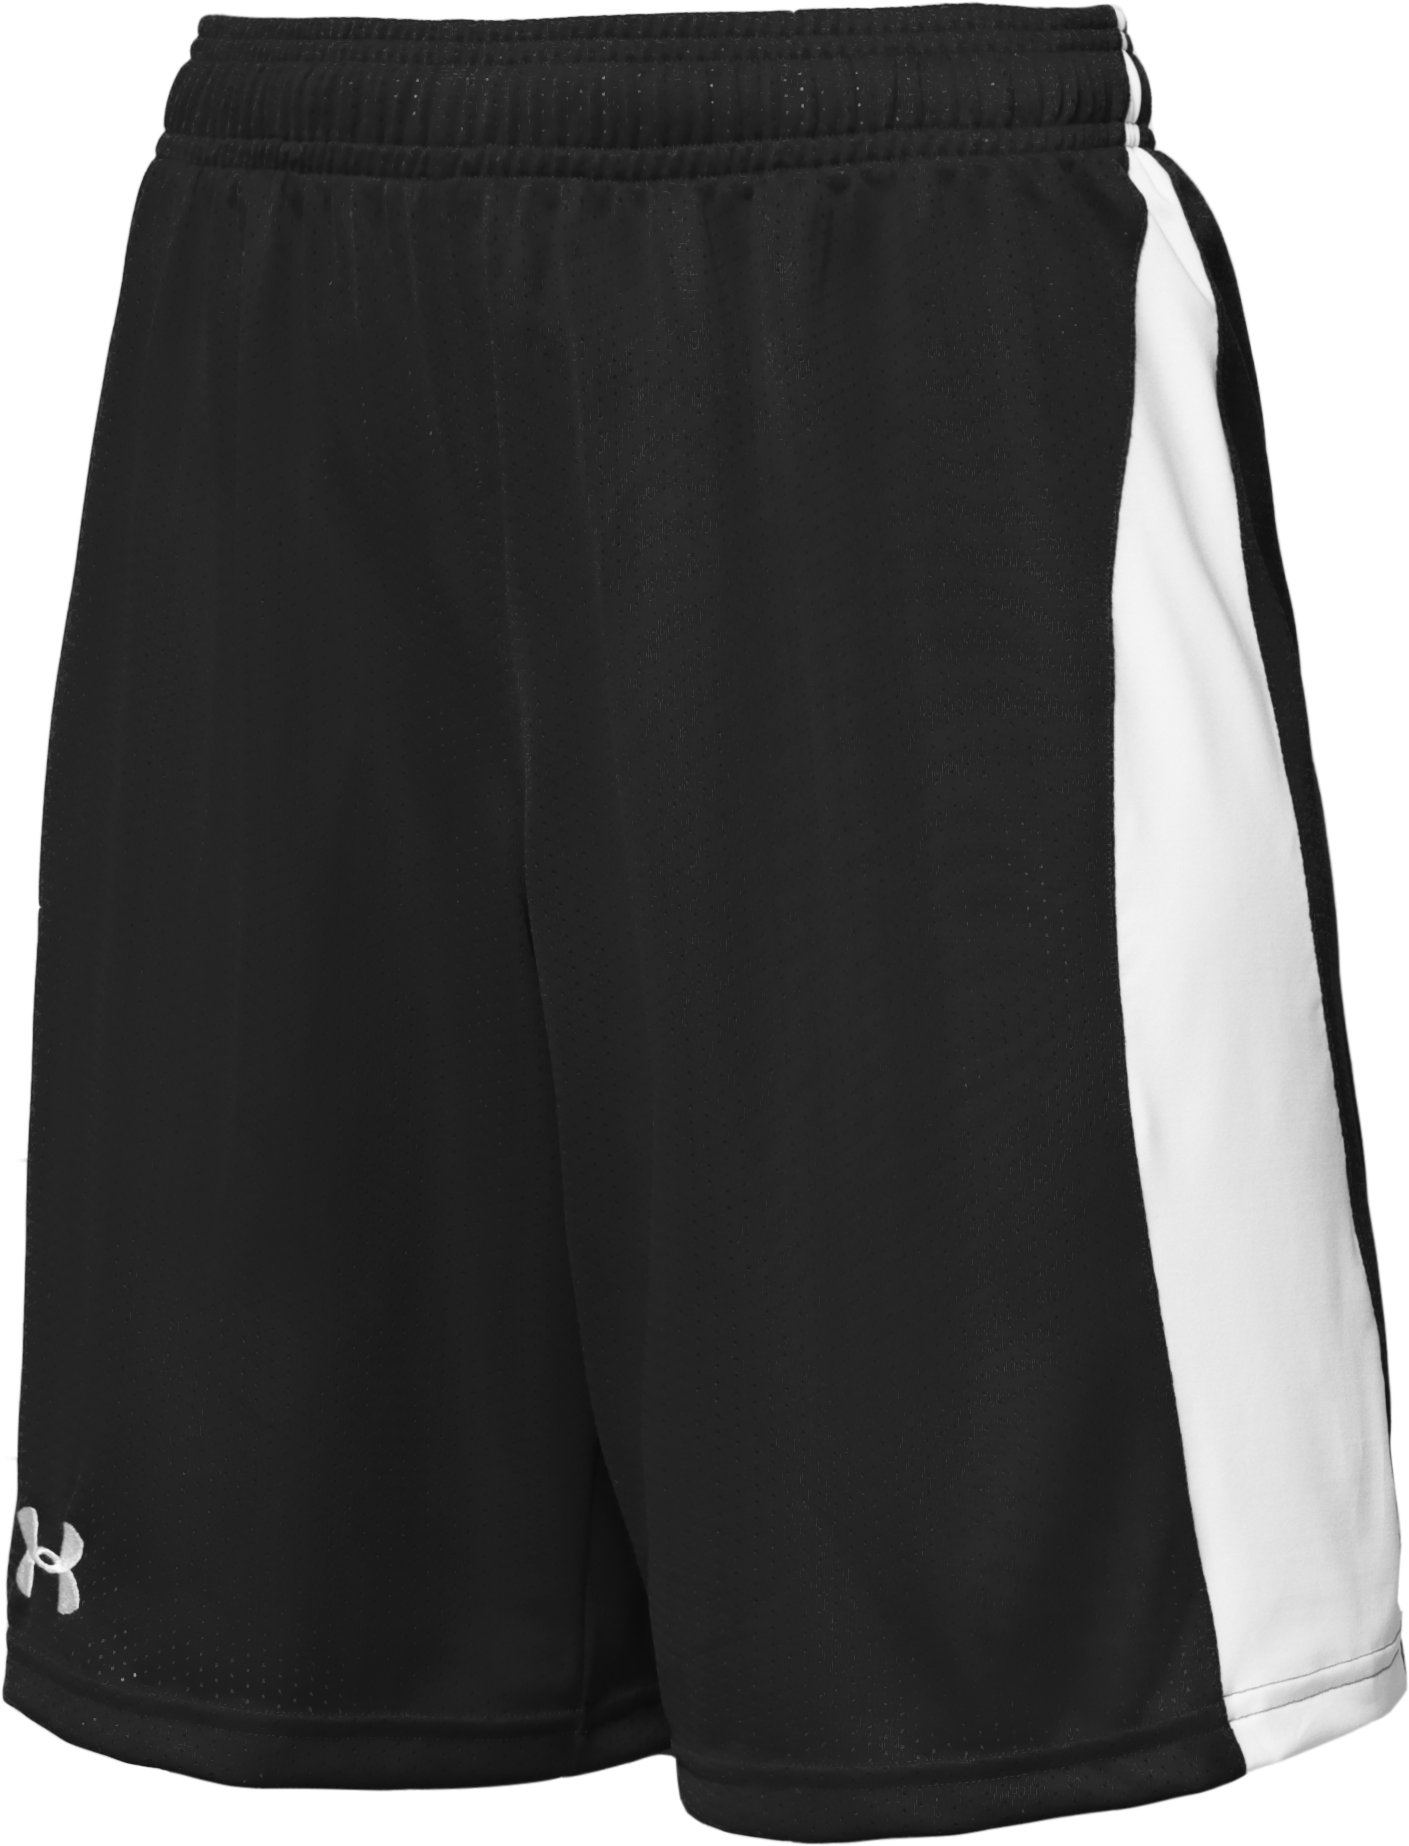 "Boys' UA Finisher 8.5"" Shorts, Black"